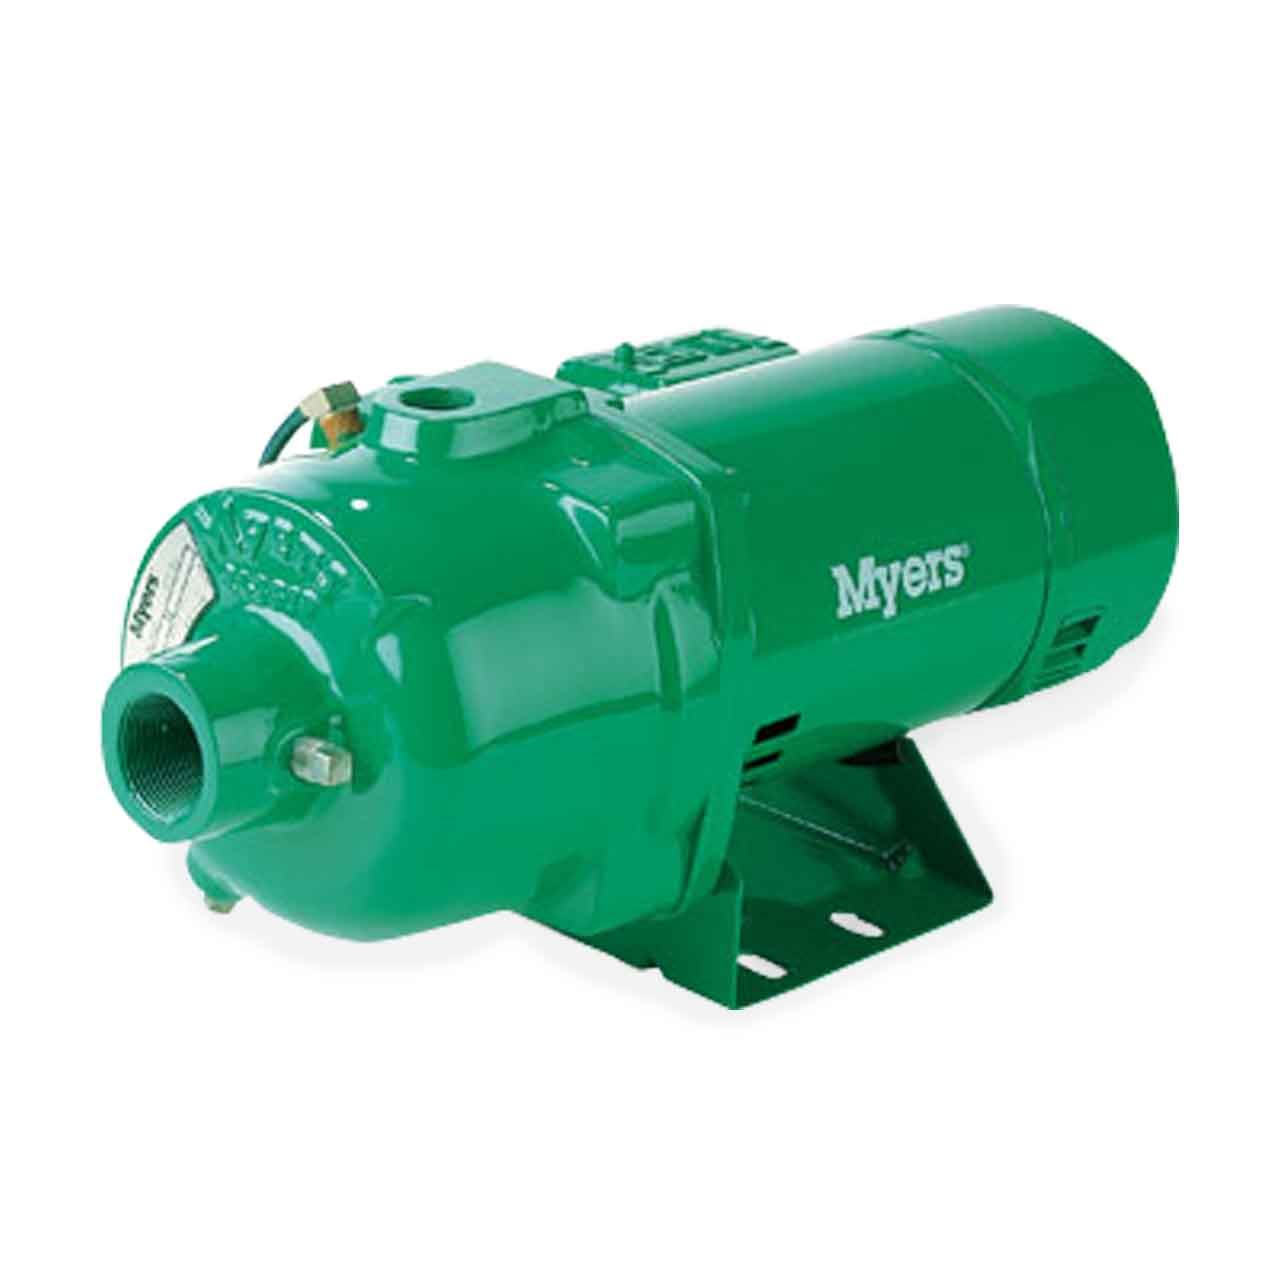 medium resolution of myers myers hr50s series convertible jet pumps 0 5 hp 115 230vmyers hr50s wiring diagram